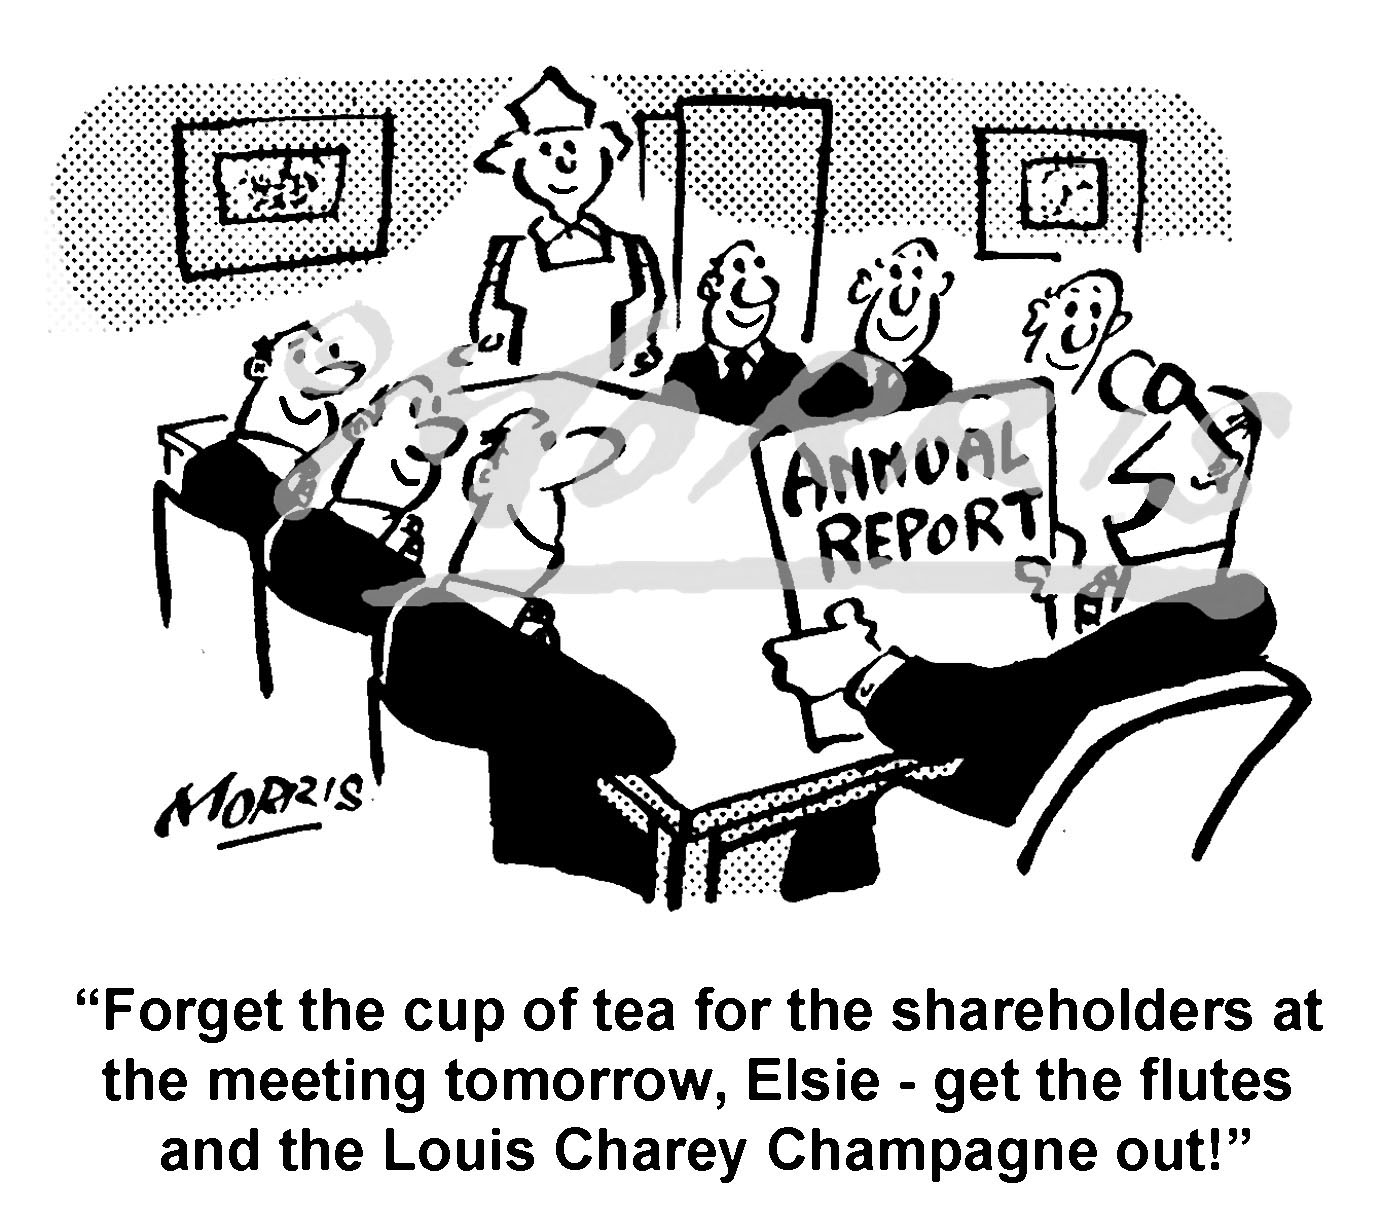 Boardroom meeting cartoon,  shareholders report cartoon Ref: 8611bw